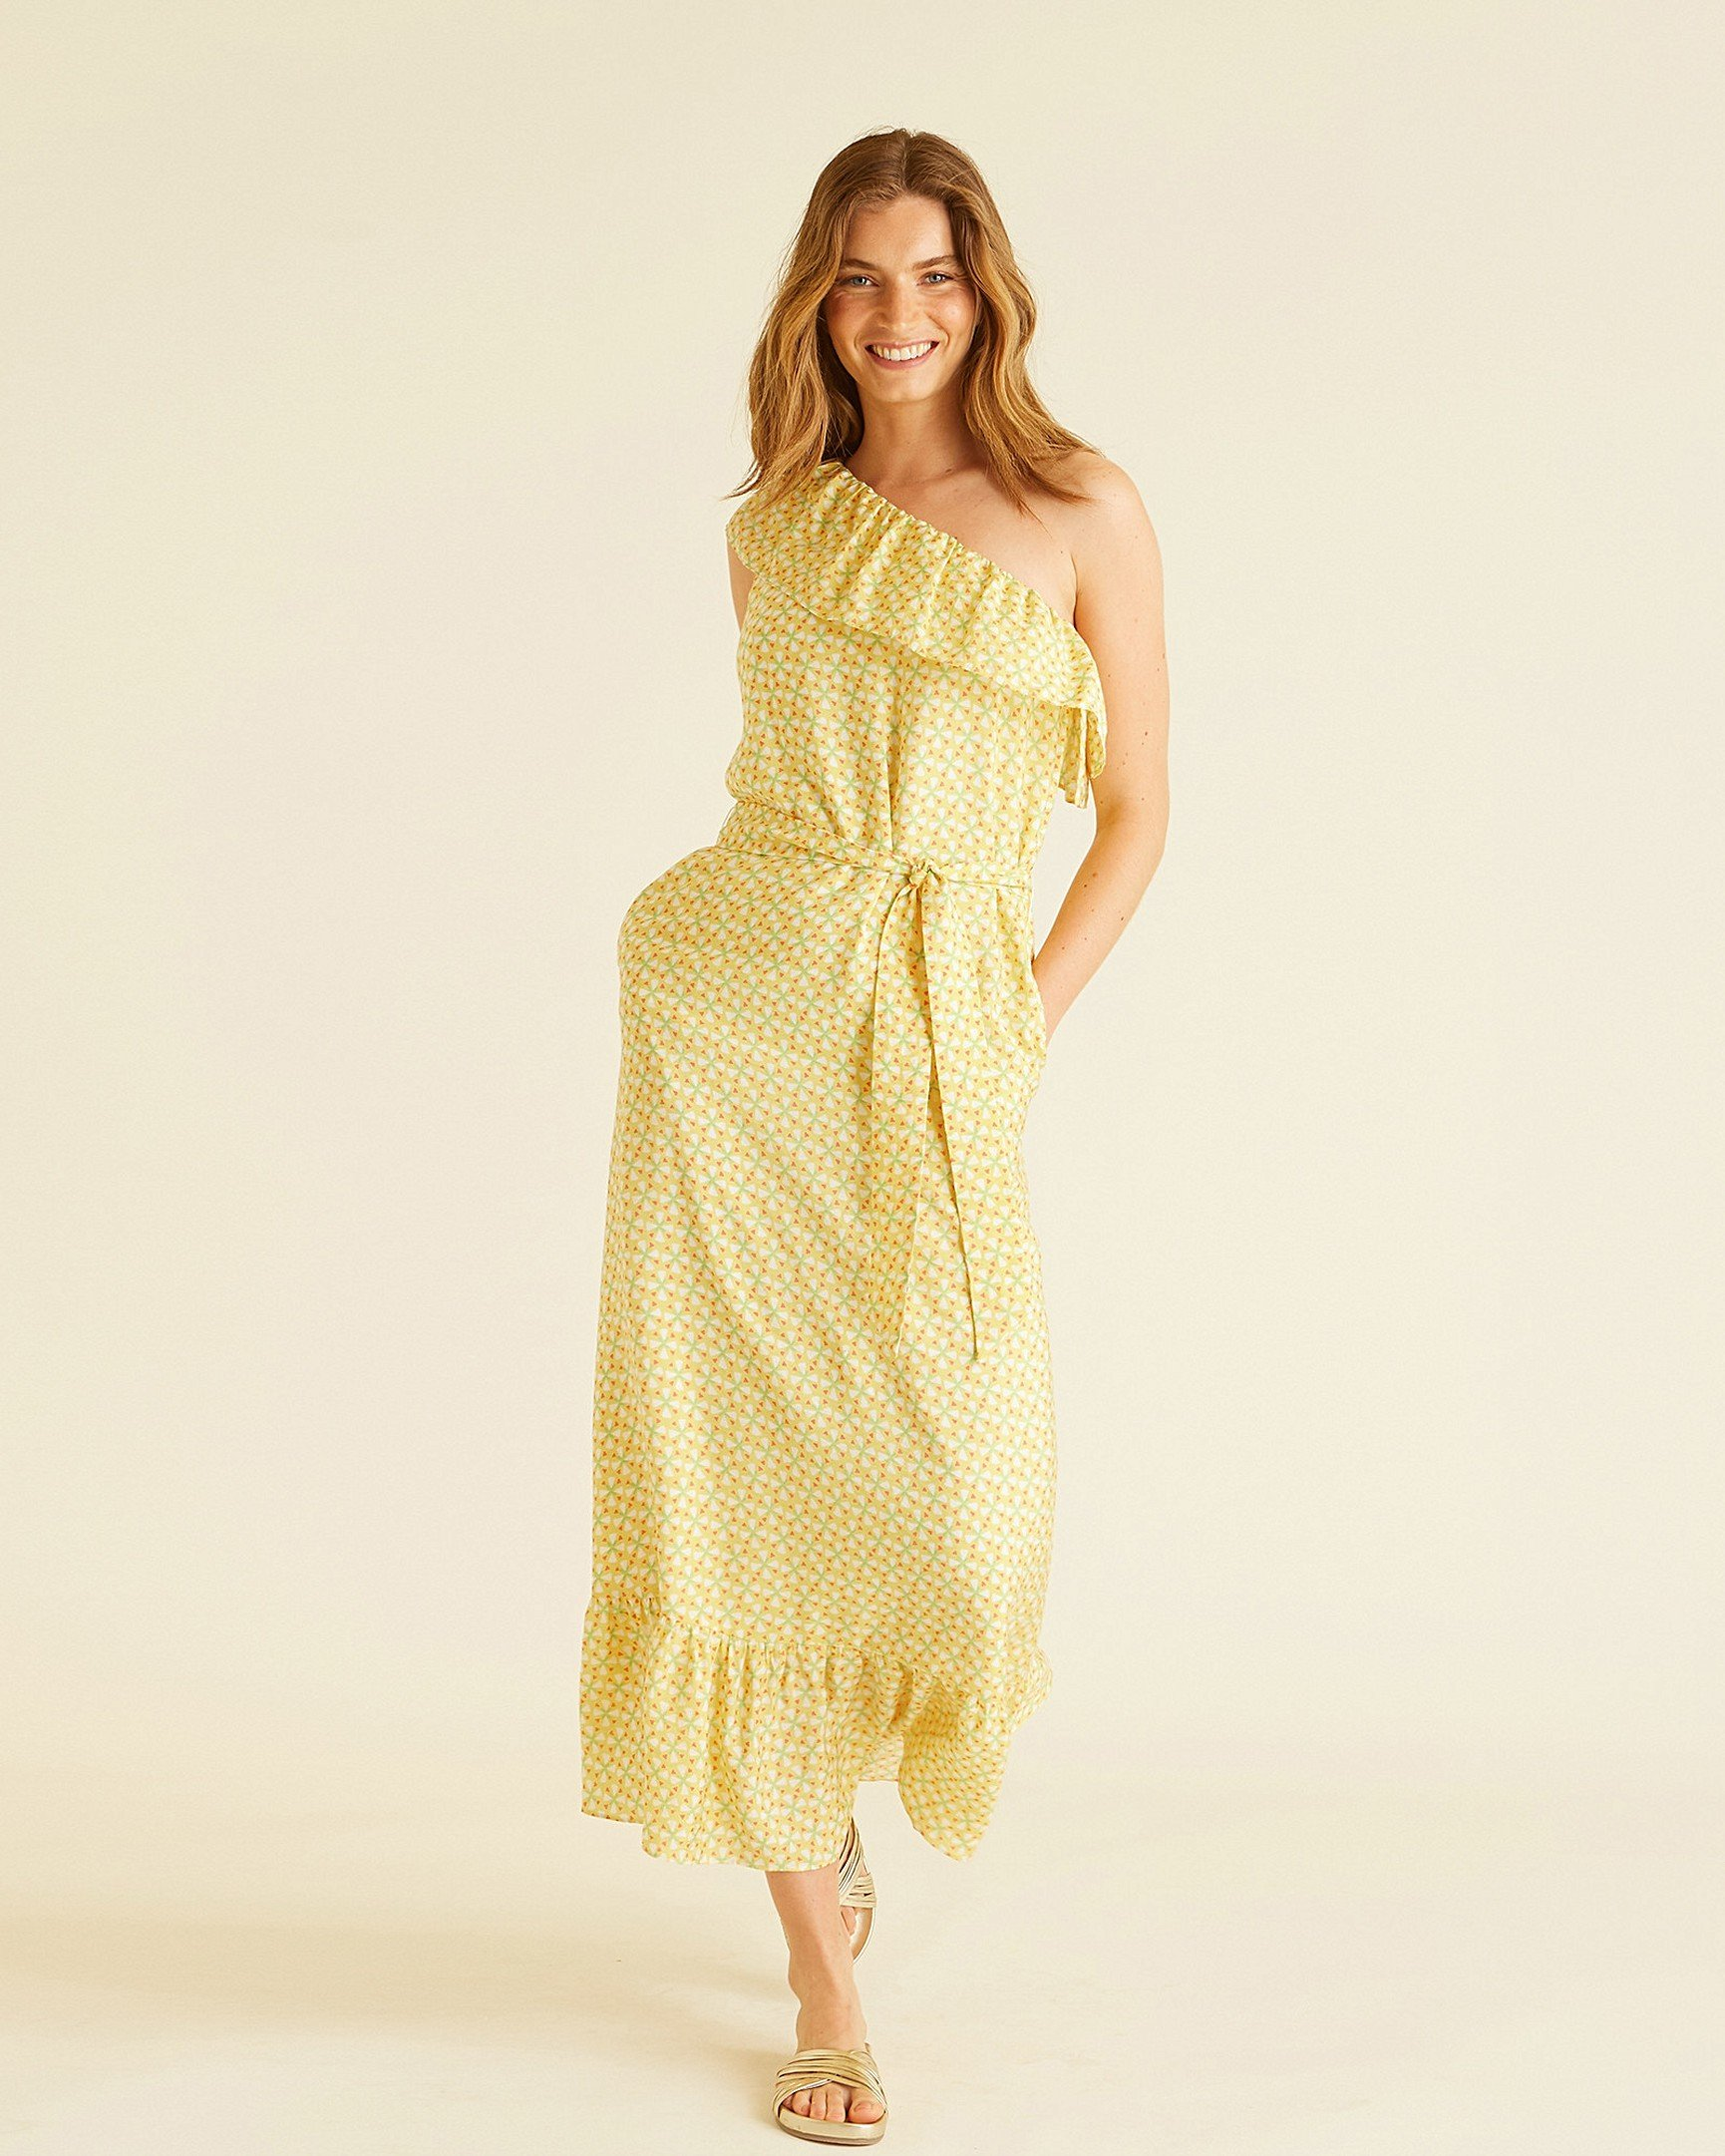 5b18c91945a Tile Print Yellow One Shoulder Maxi Dress